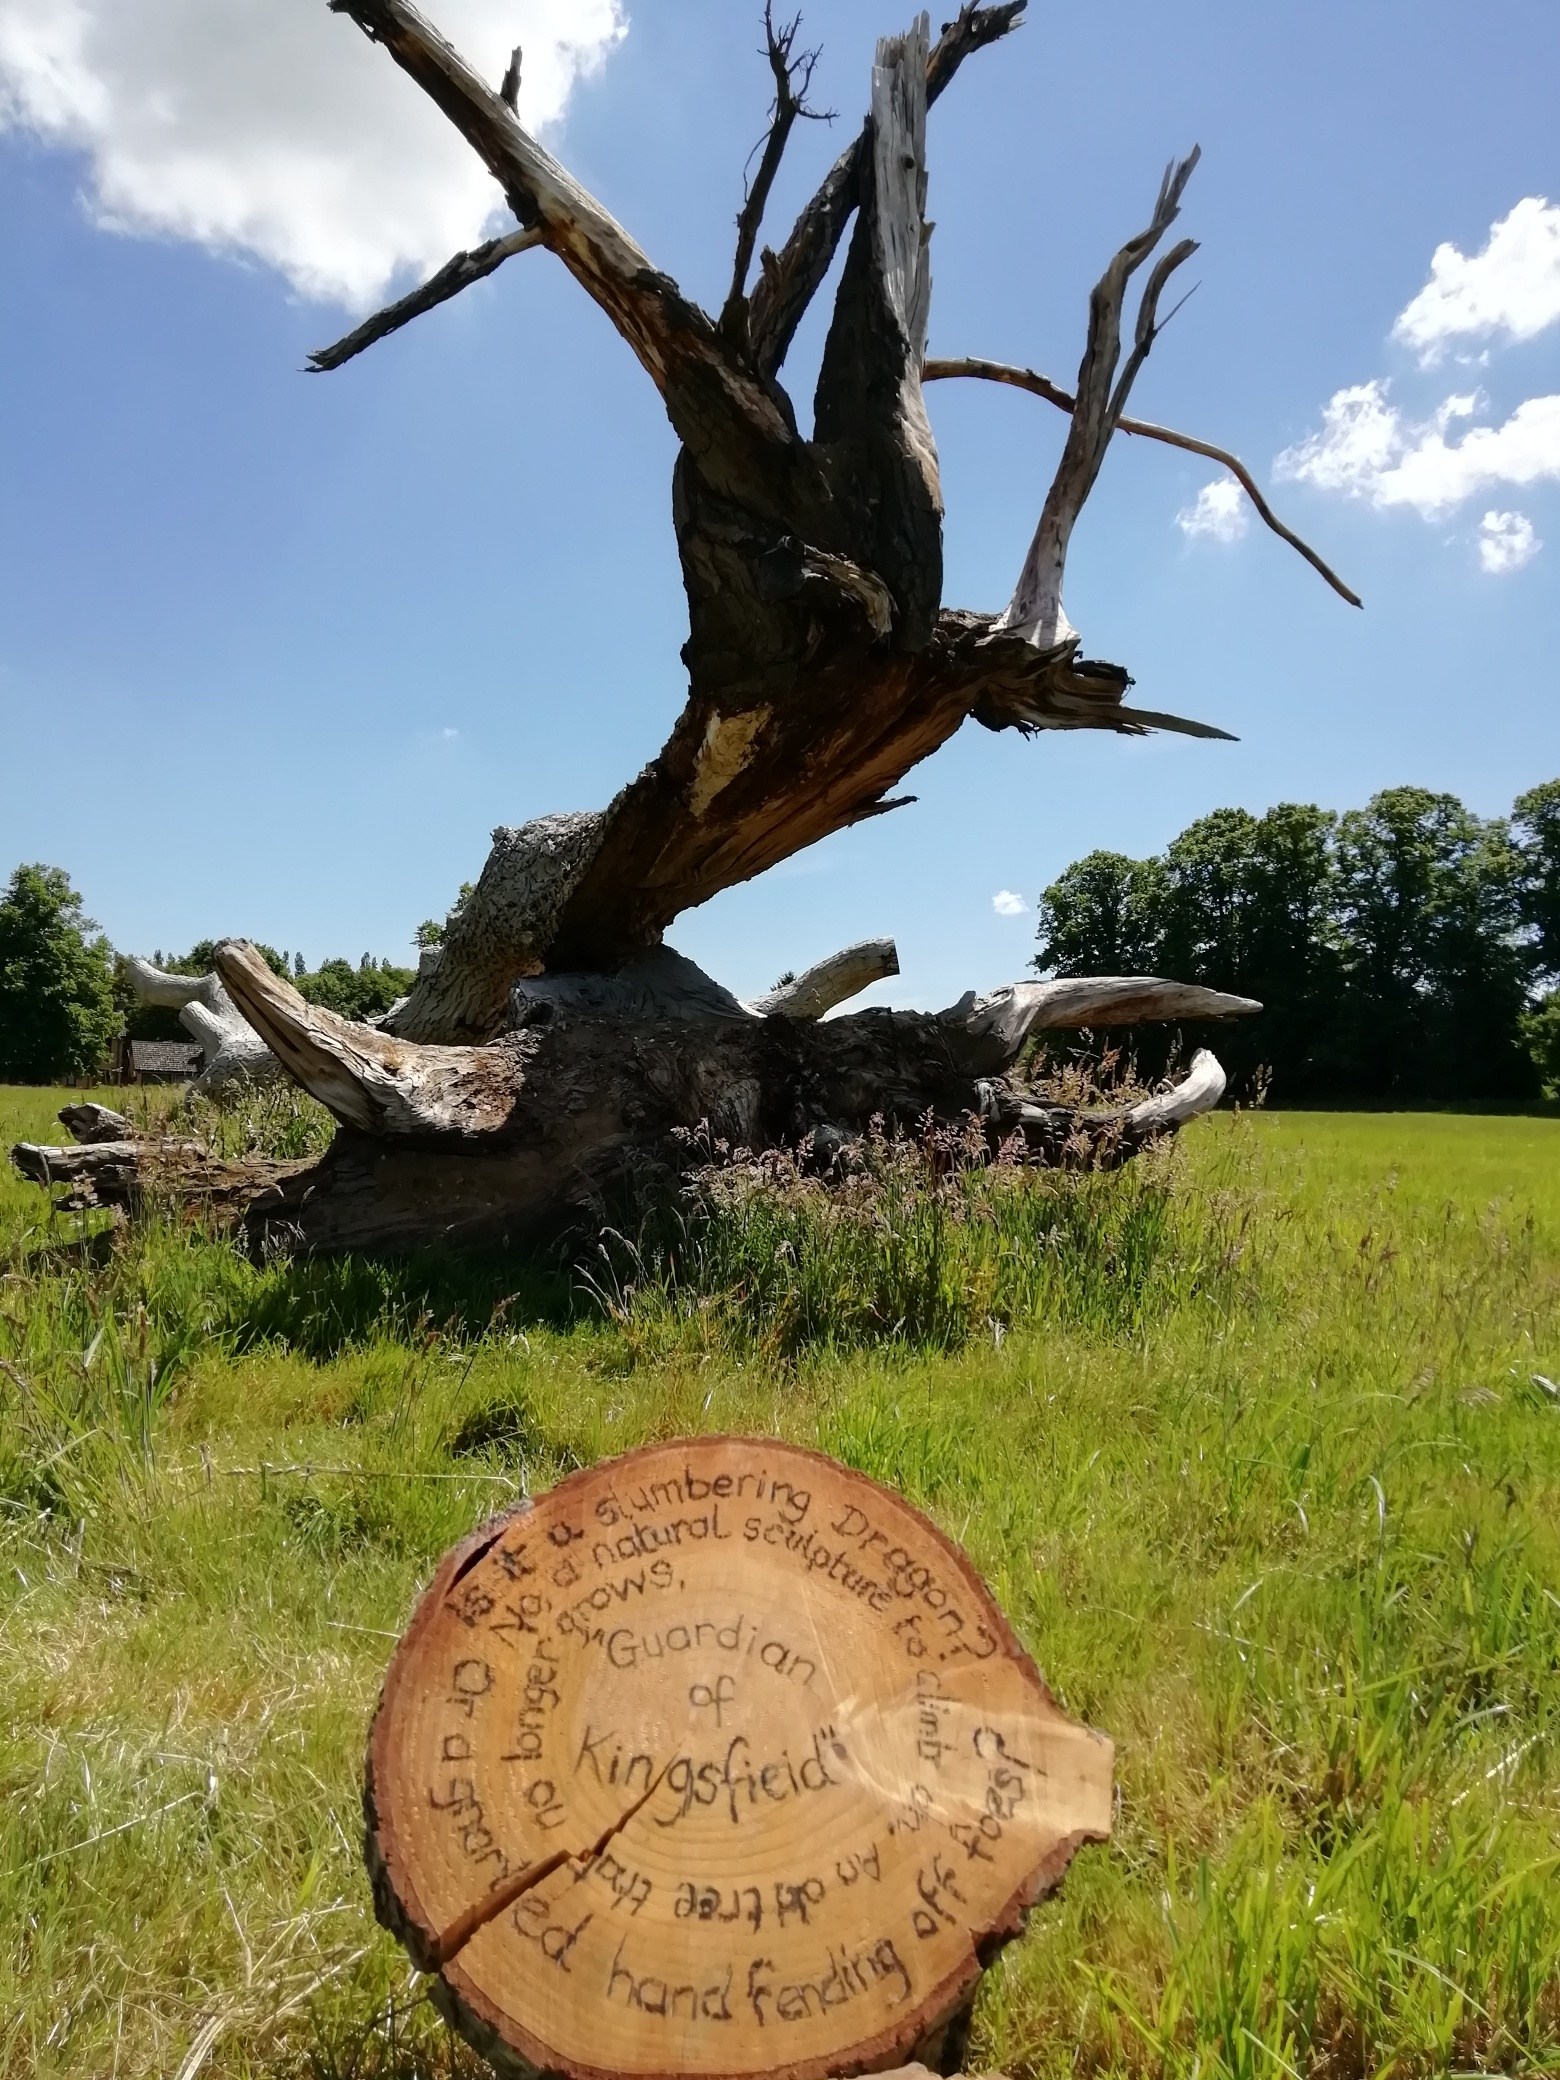 A slice of tree with an inscription reading: Guardian of Kingsfield Is this a slumbering dragon? Or a gnarled hand fending off foes? No, a natural sculpture to climb on An old tree that no longer grows.